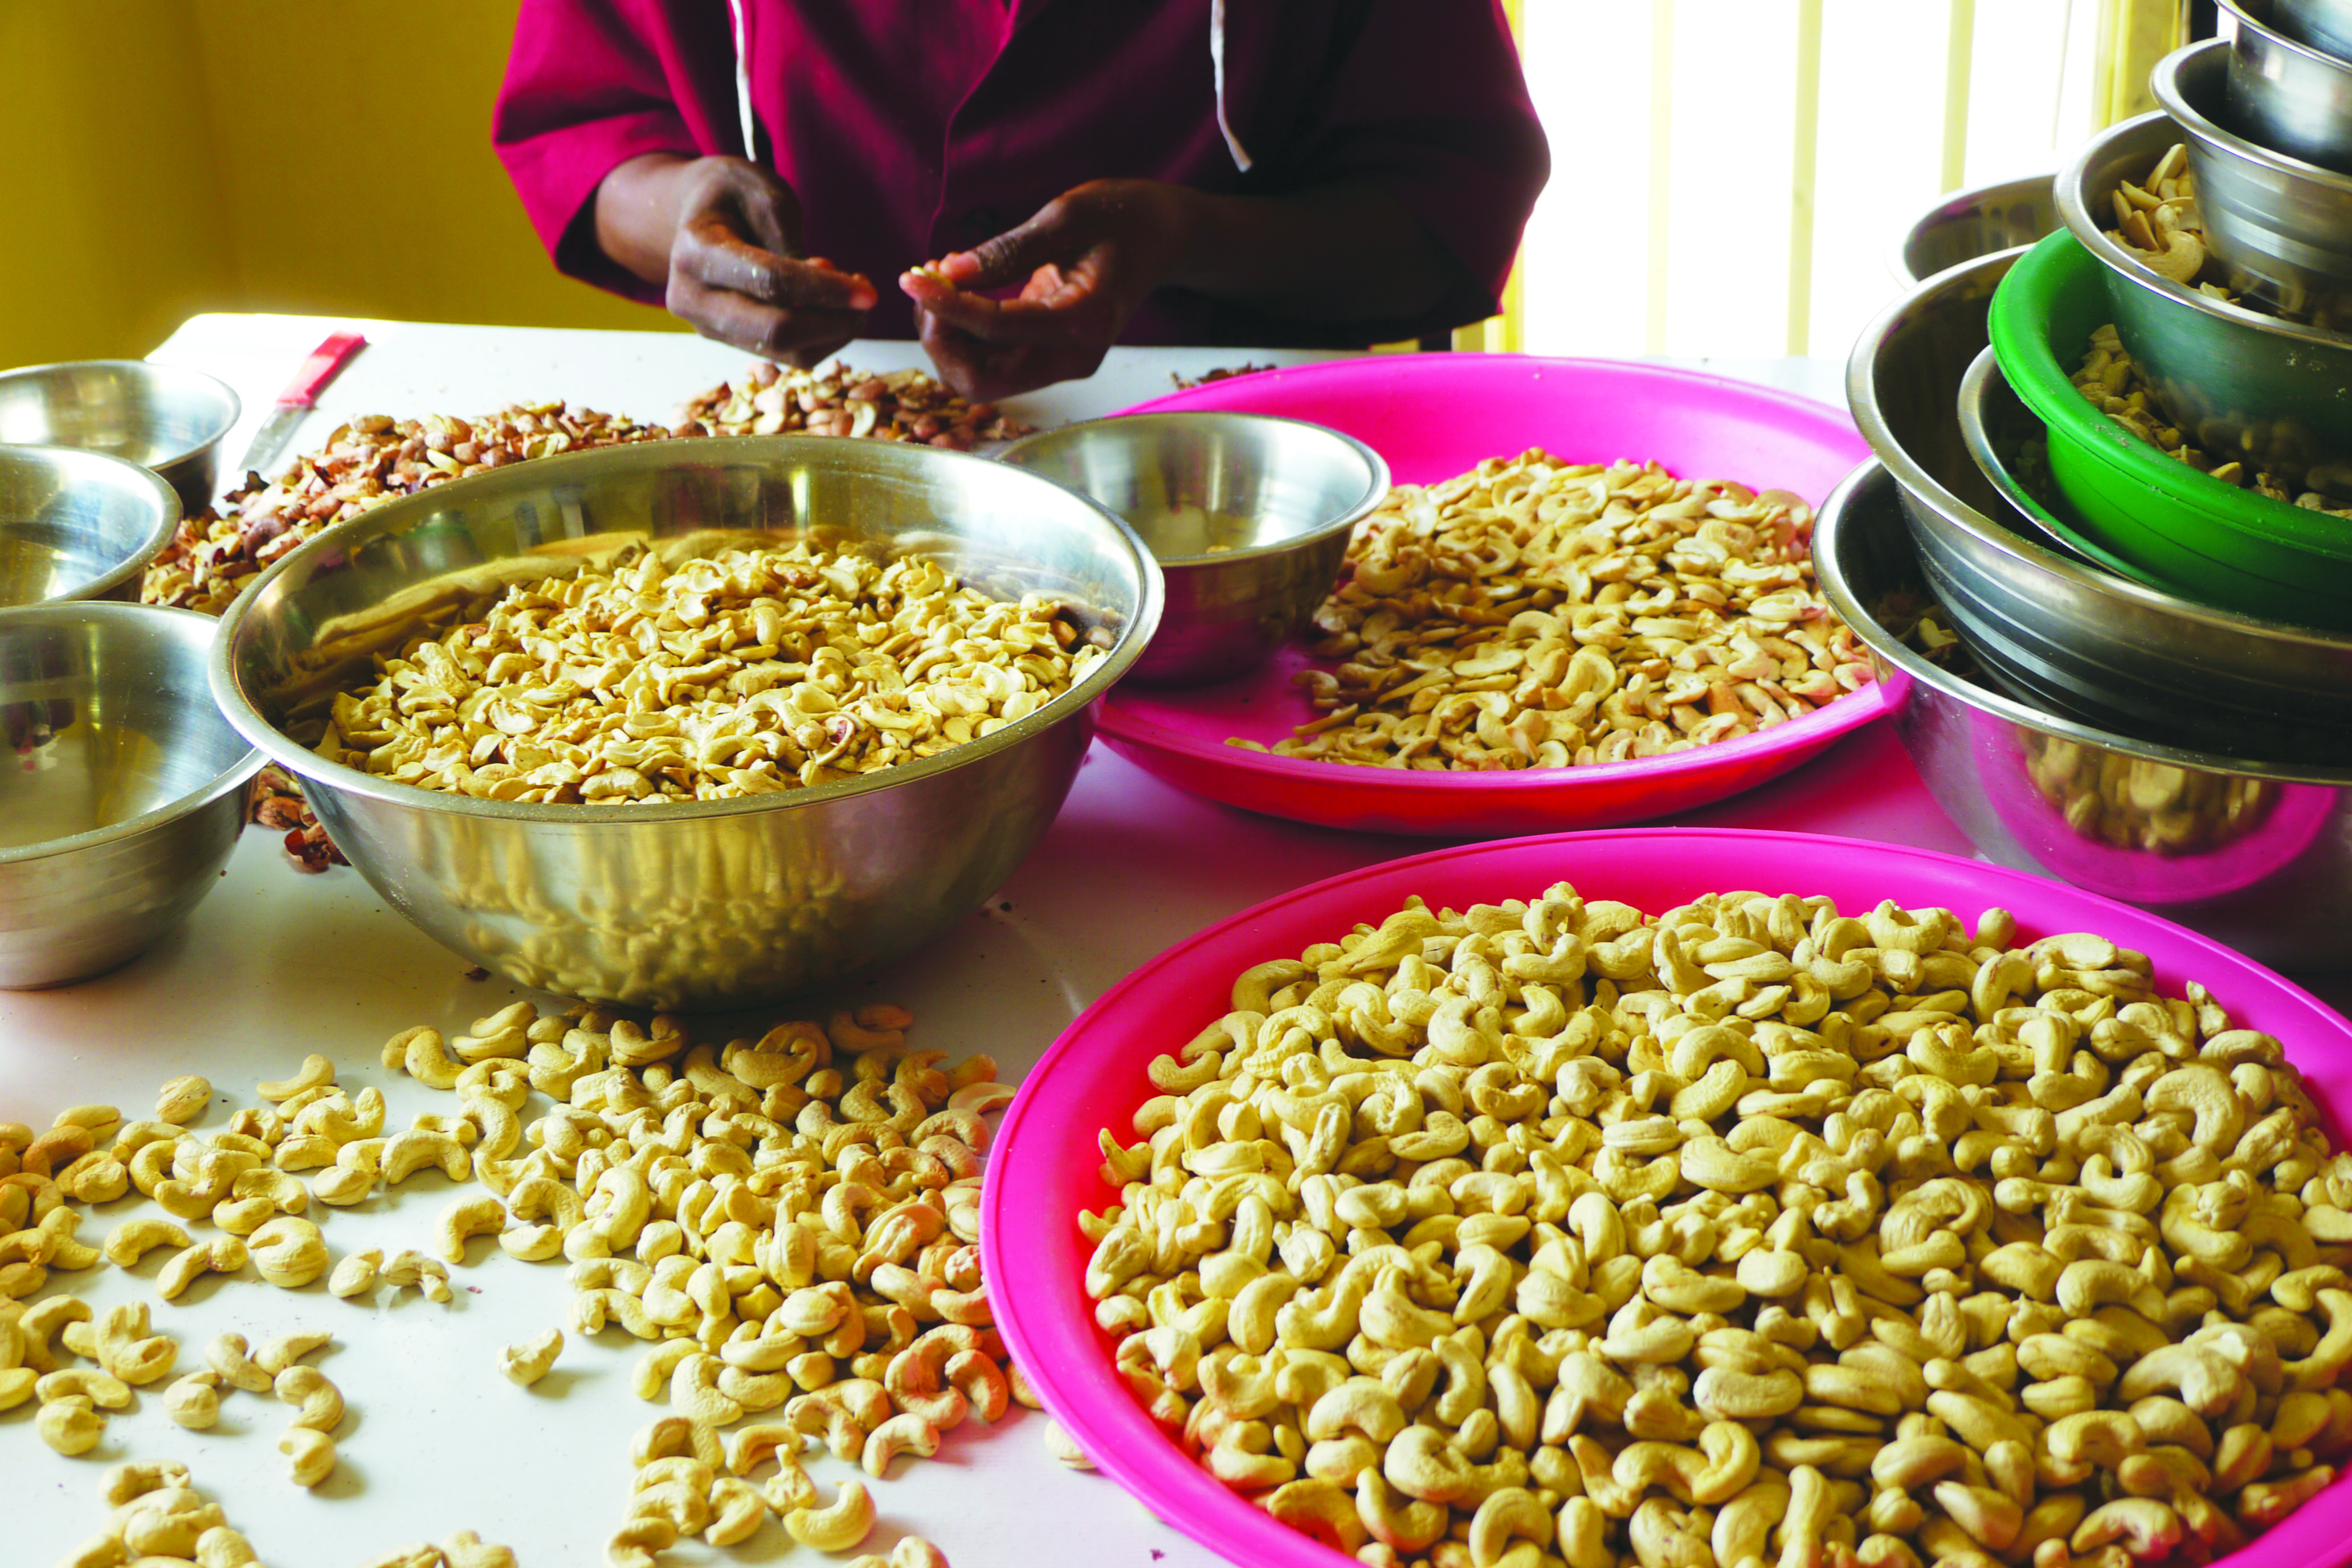 A large proportion of the employees are involved in the processing of quality organic cashew nuts. These can now be obtained through our advance sales system.